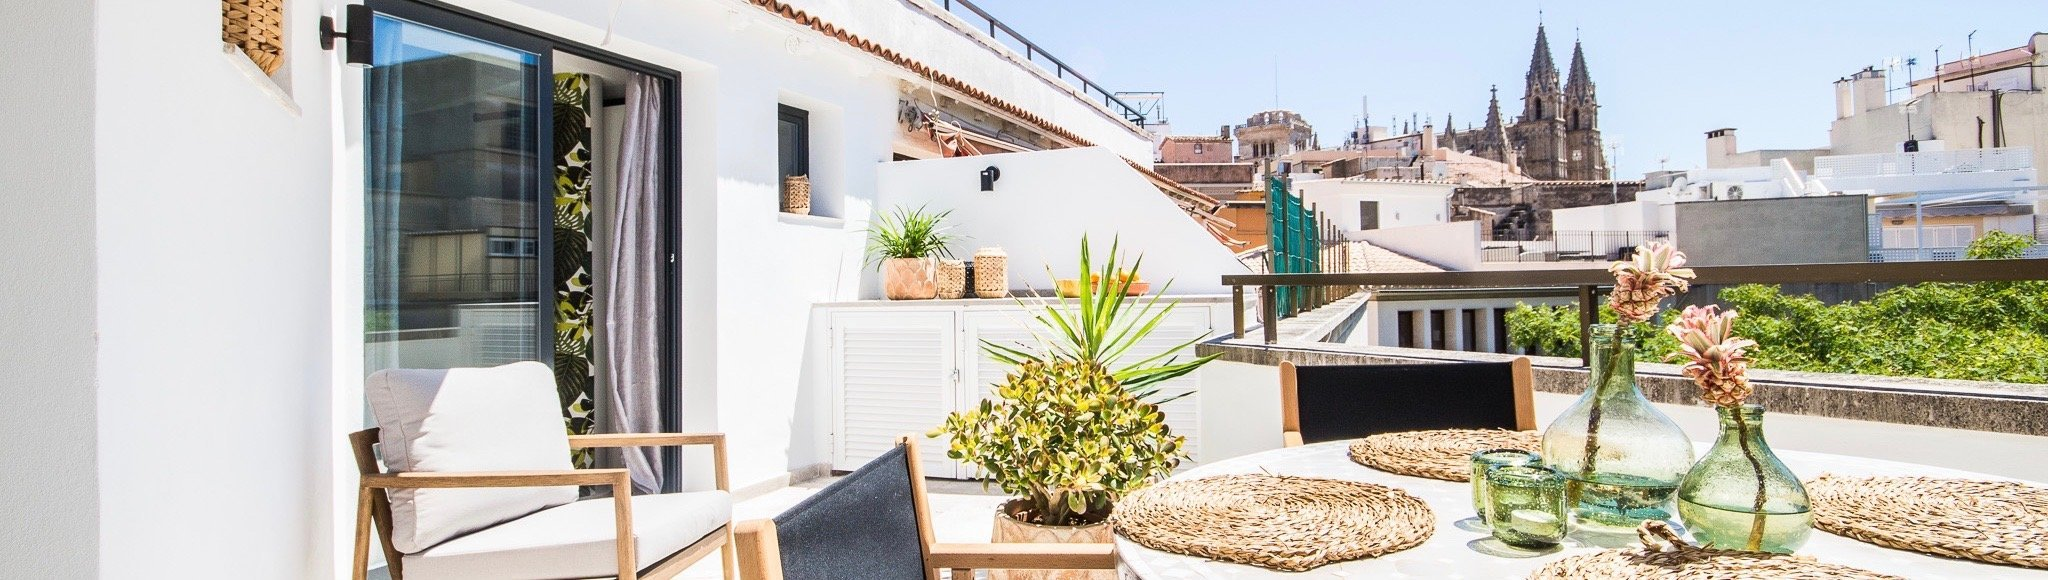 Selling a property in Mallorca